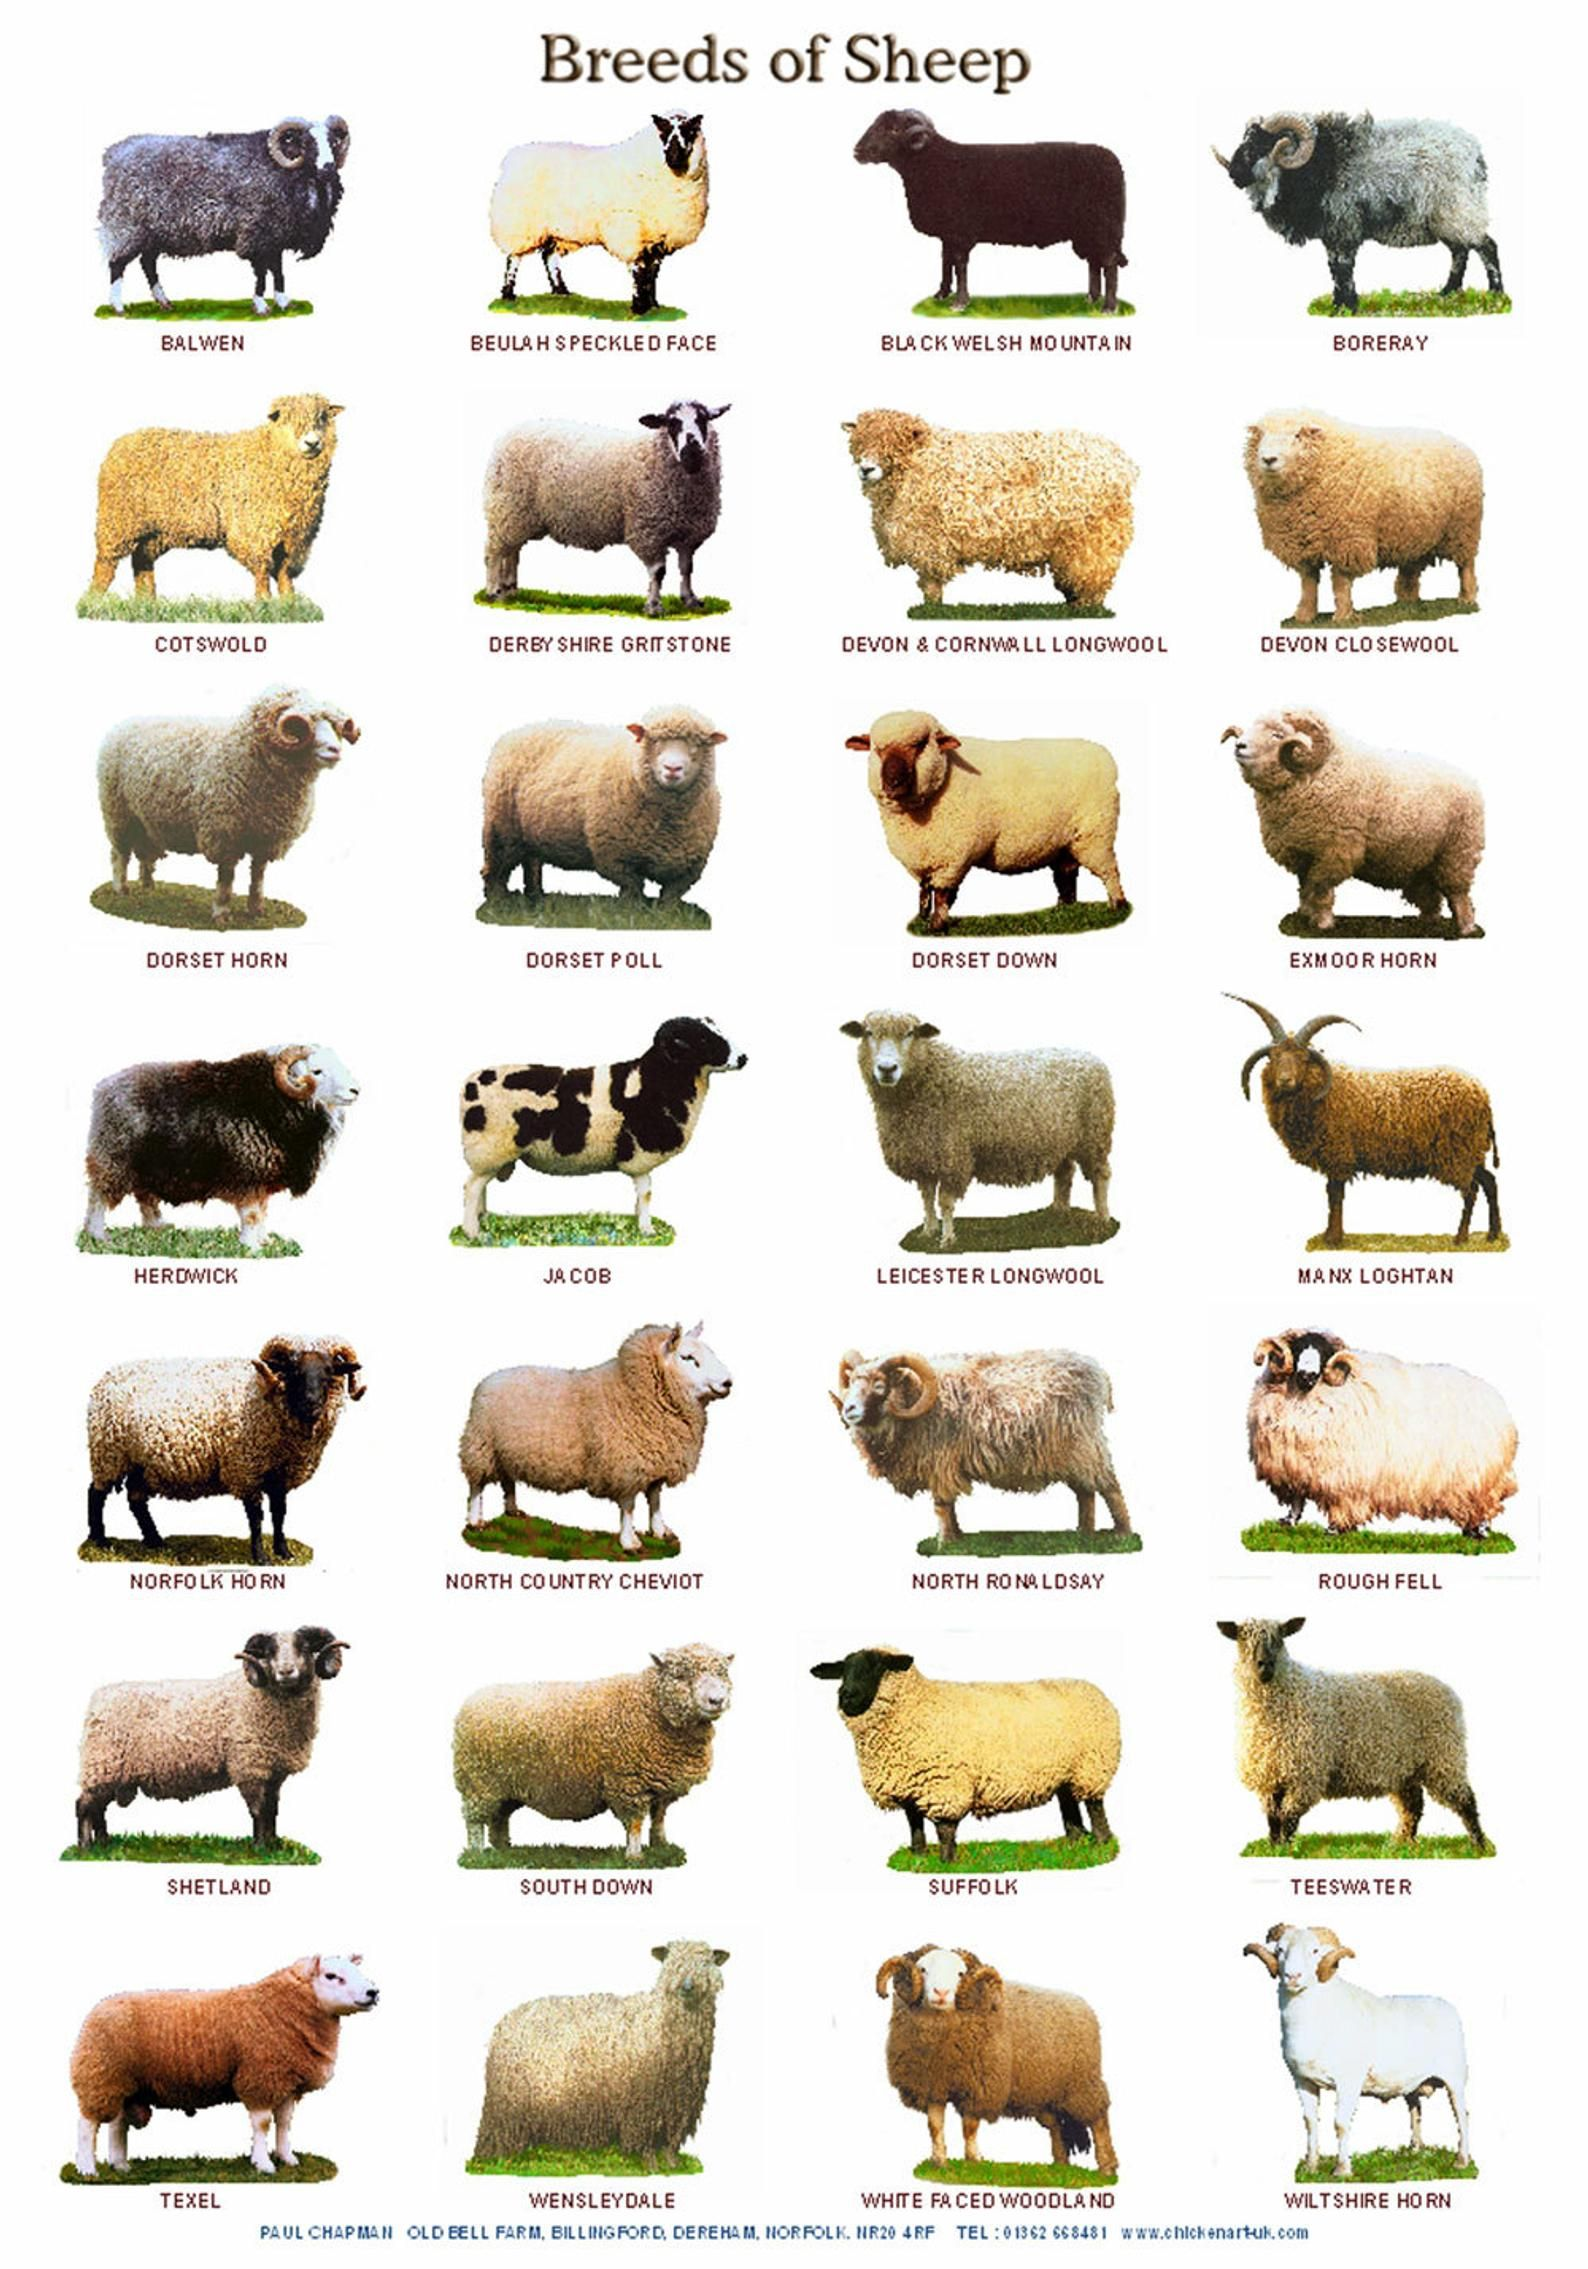 A4 Laminated Posters. Breeds of Cattle, Sheep or P